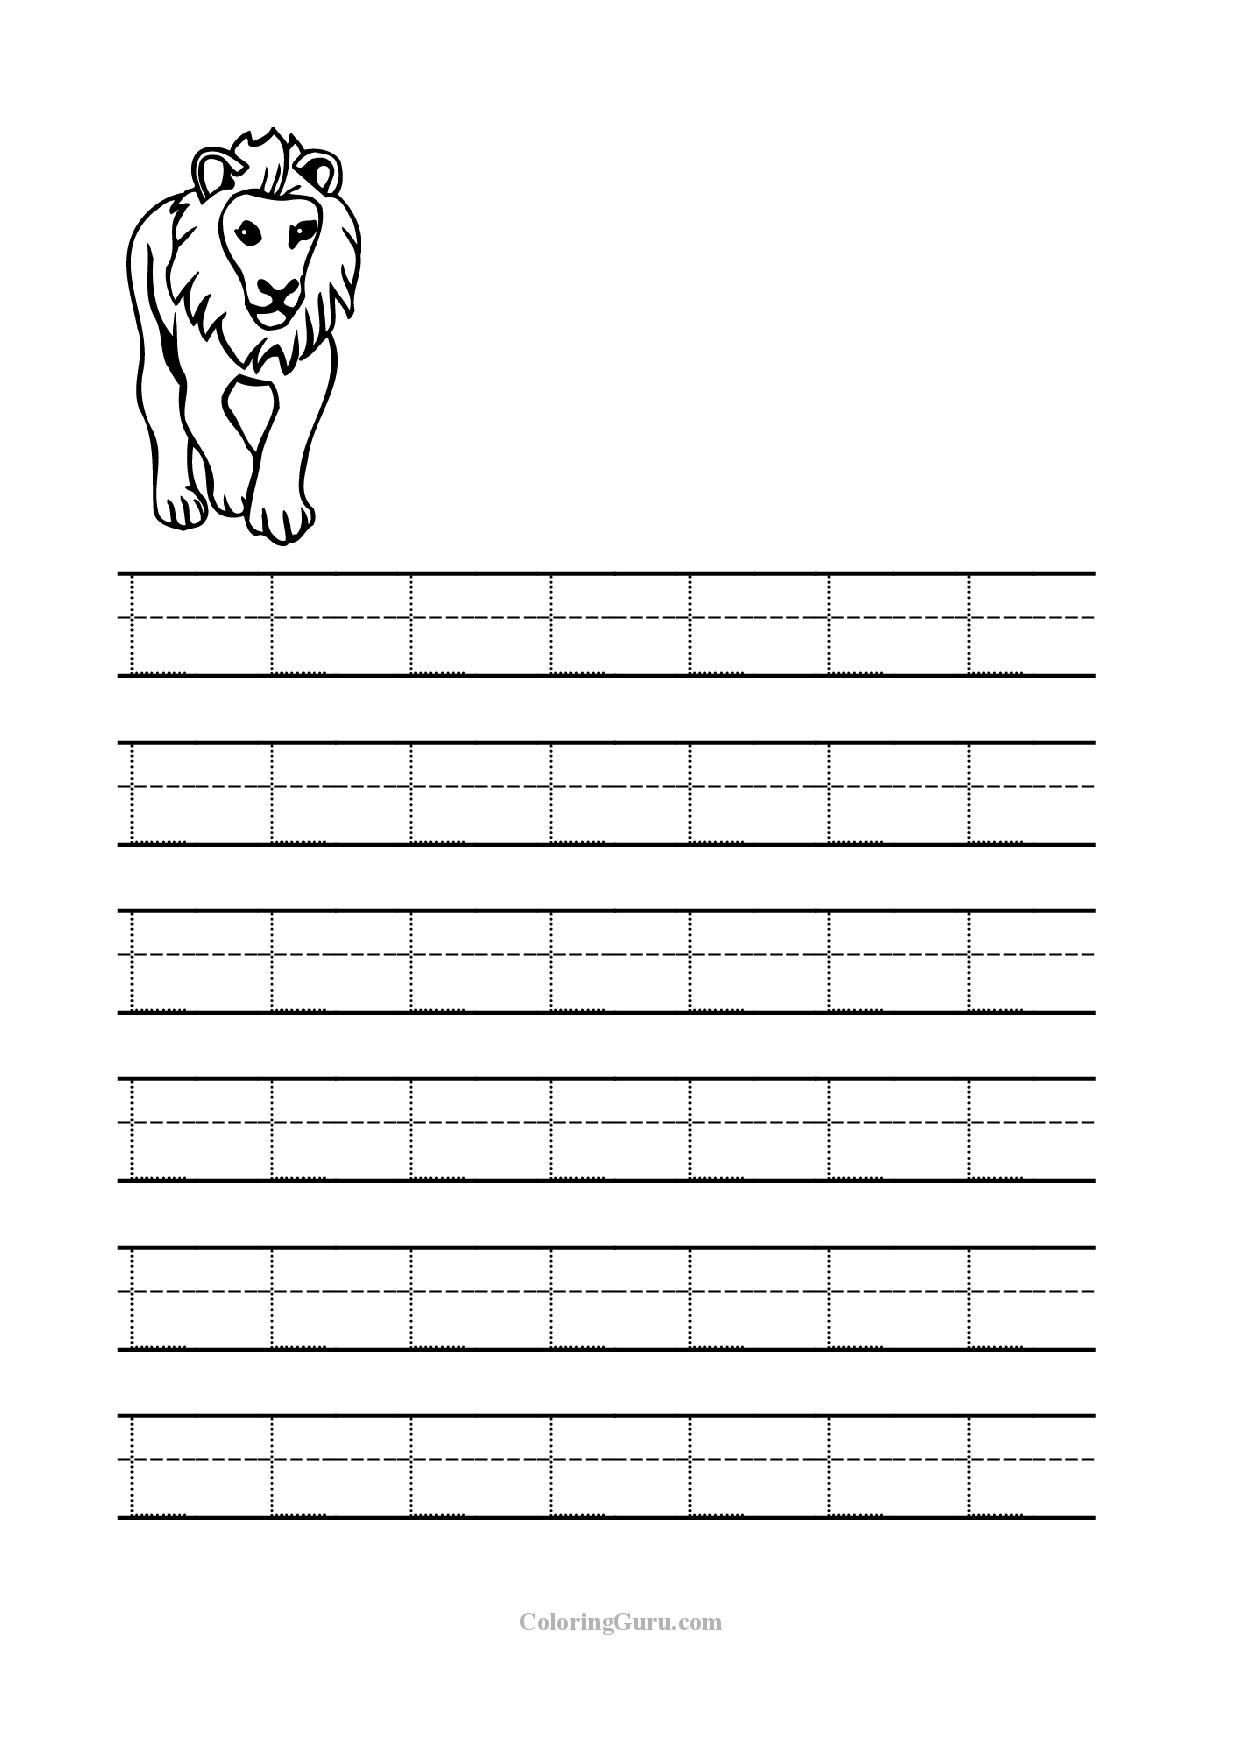 Letter L Worksheets for Preschool Free Printable Tracing Letter L Worksheets for Preschool